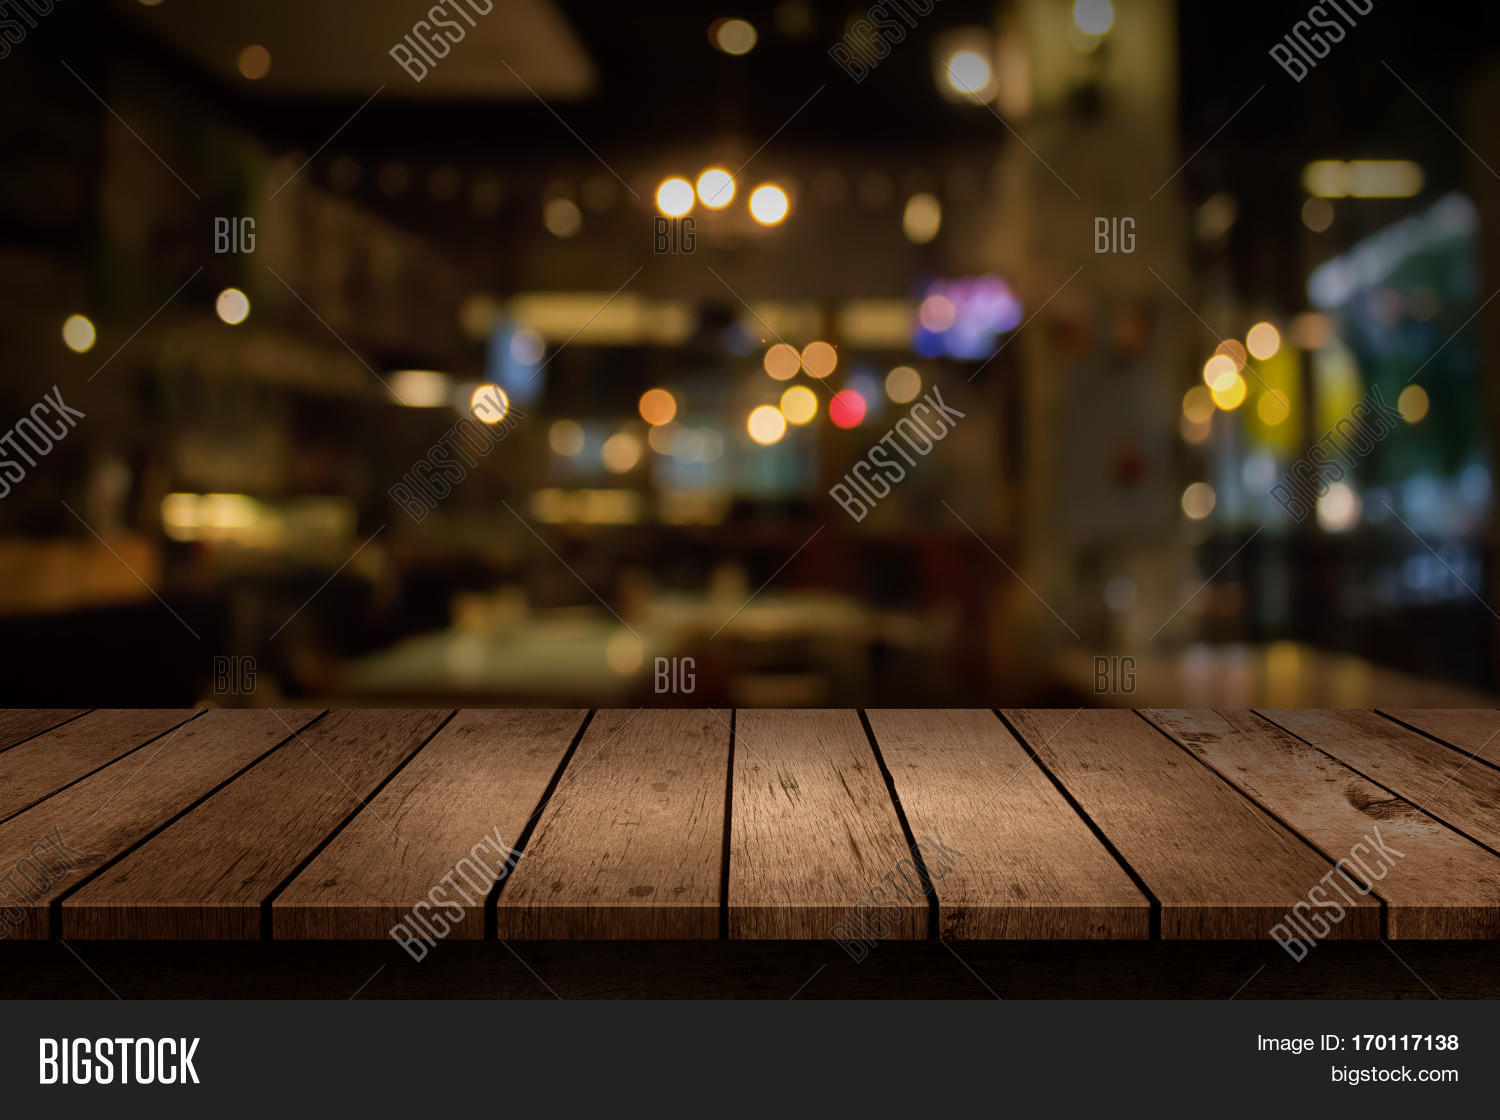 Image Café Blur Coffee Shop Cafe Image And Photo Free Trial Bigstock